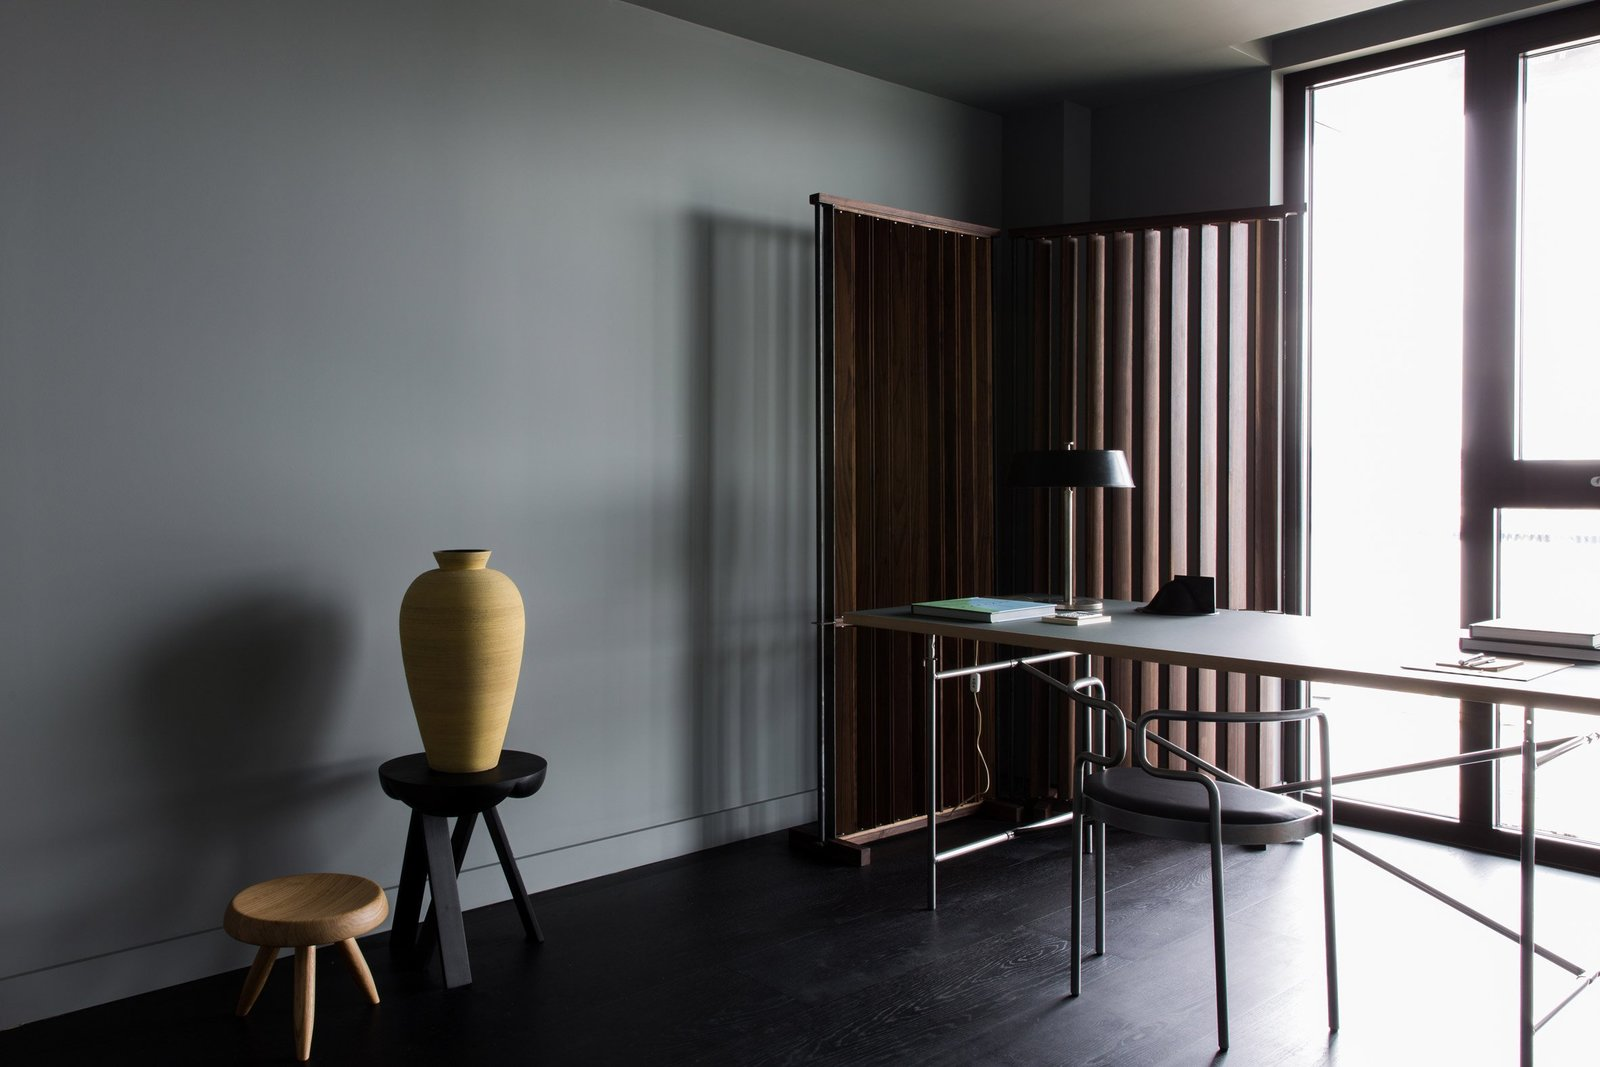 Office, Study Room Type, Lamps, Chair, Desk, and Dark Hardwood Floor  Photo 7 of 13 in For Just Under $2 Million, You Could Live in a London Penthouse Outfitted by Cereal Magazine